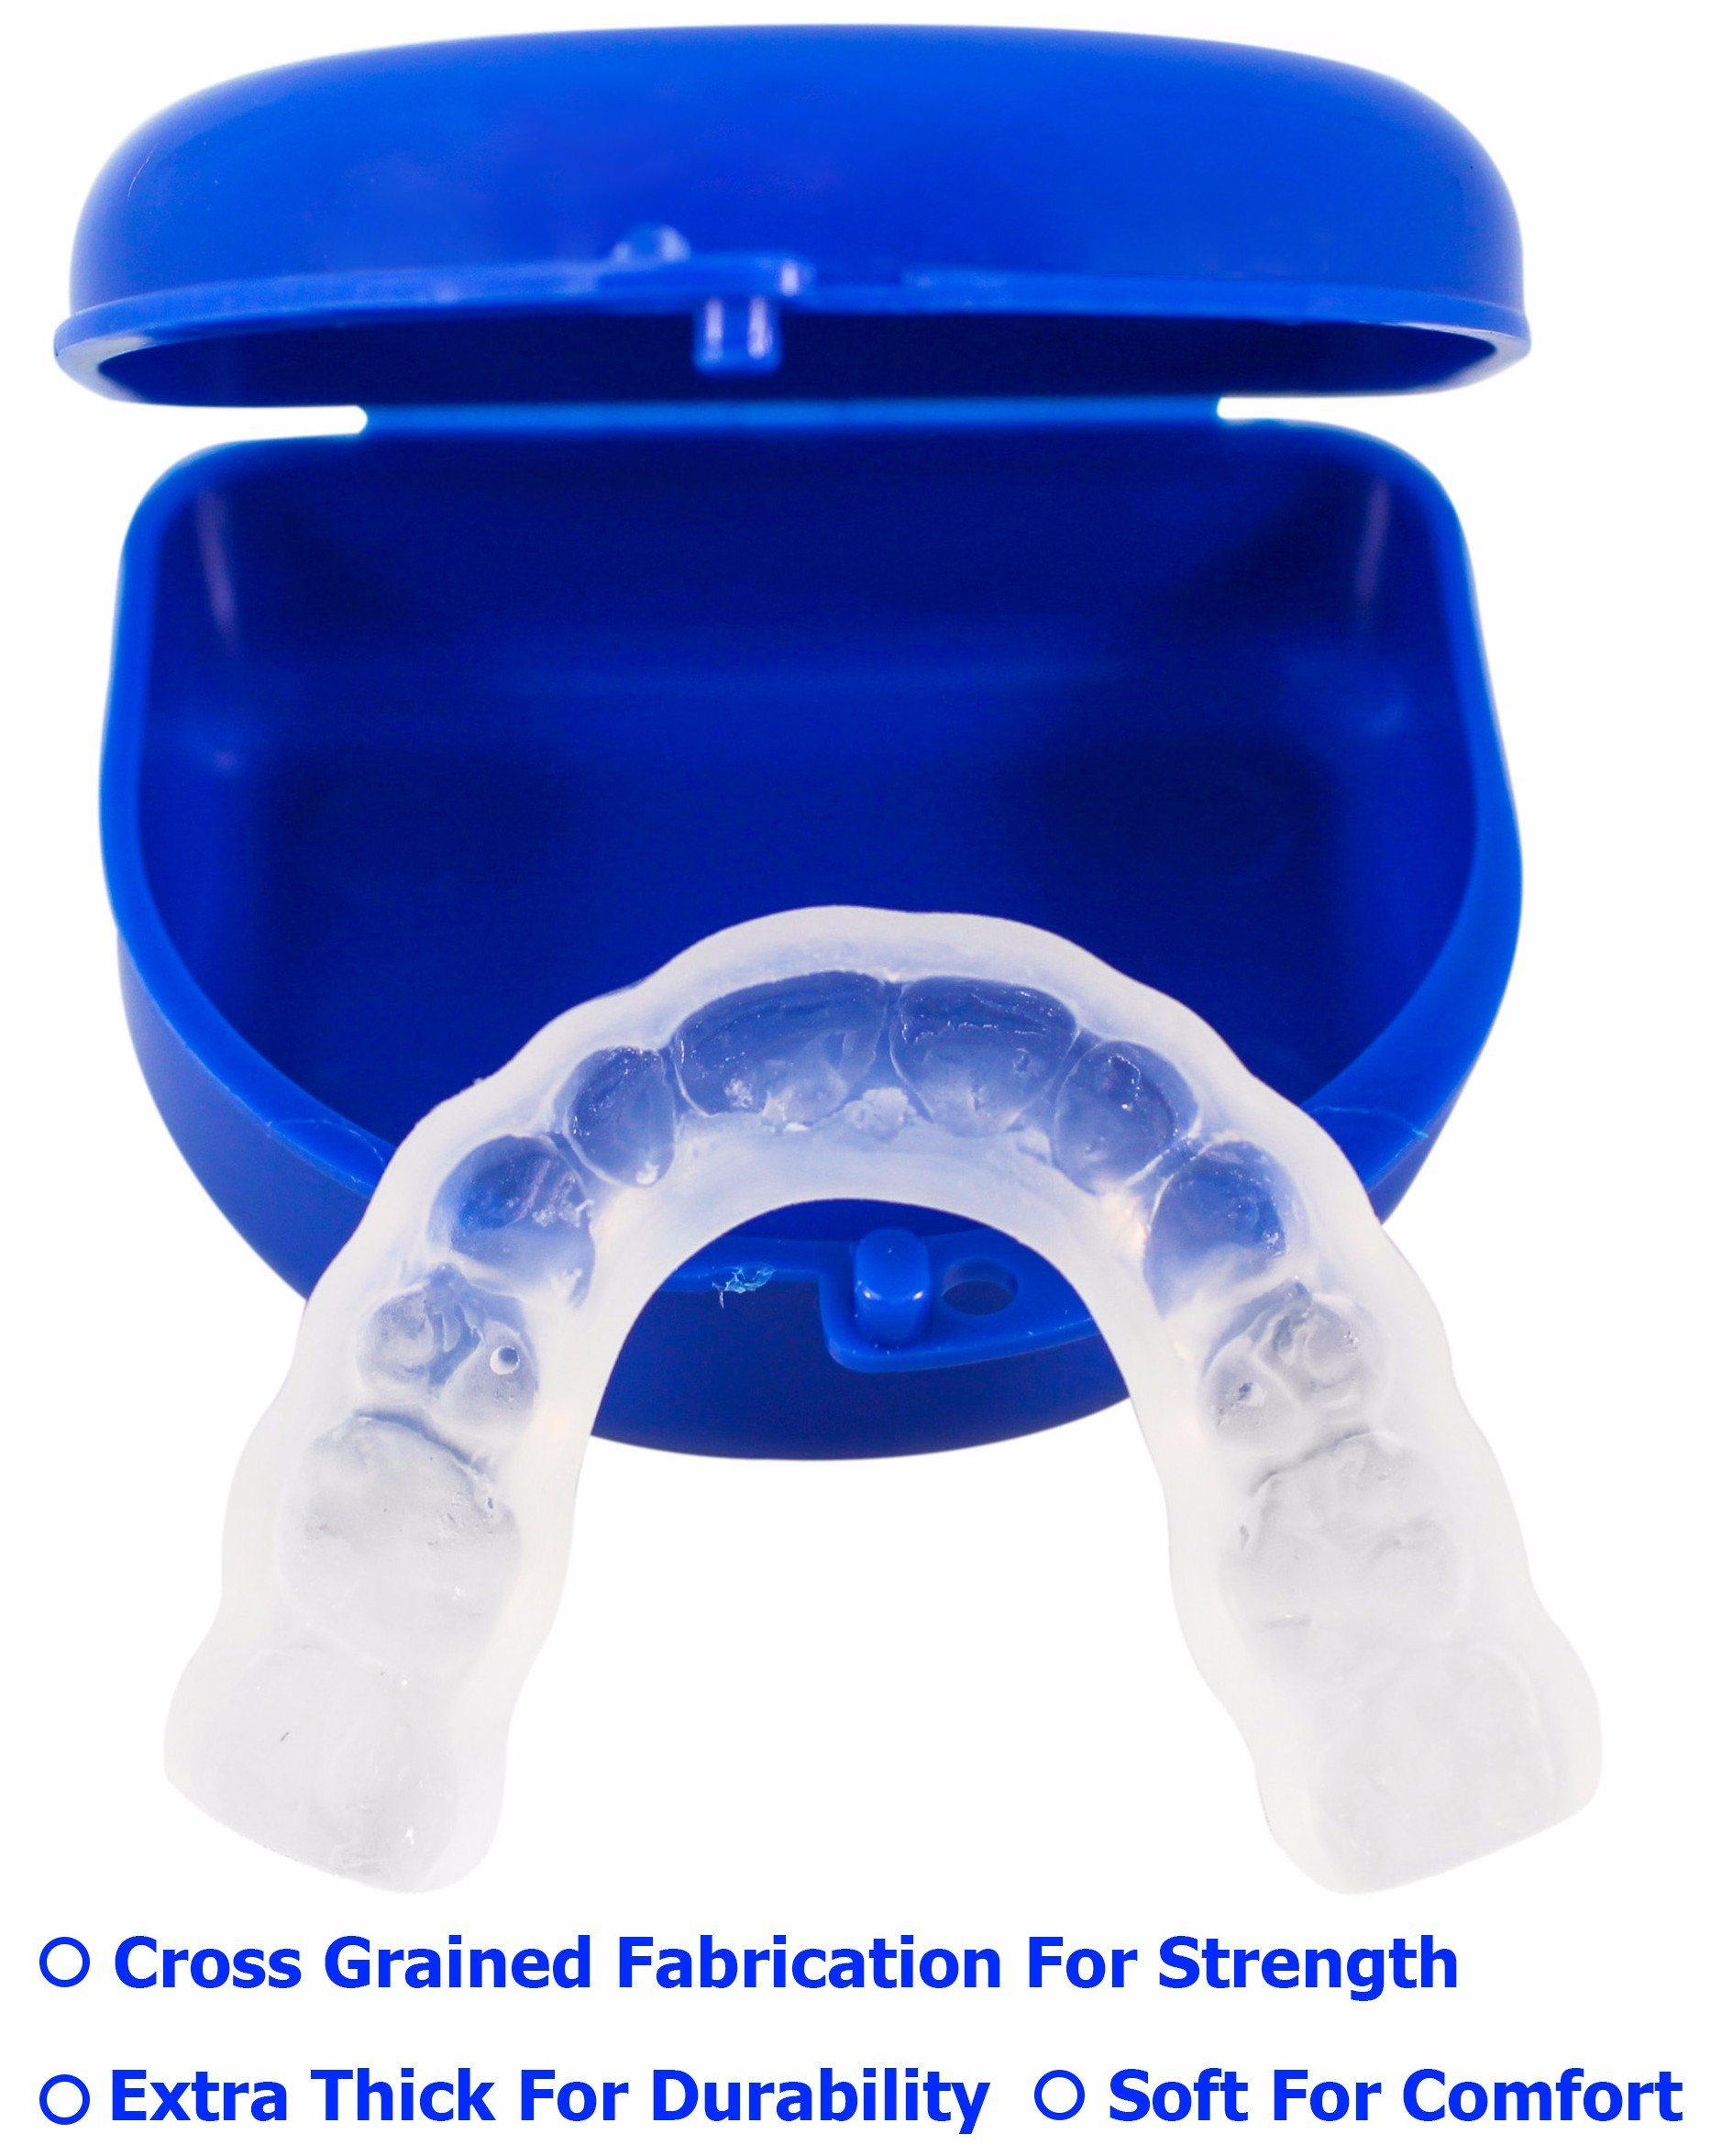 TUFF BRUX Bruxism Custom Made Teeth Grinding Guard - Extra Thick Soft Custom Teeth Night Mouth Guard For Teeth Grinding and Clenching - Bite Splint Teeth Guard by Teeth Armor